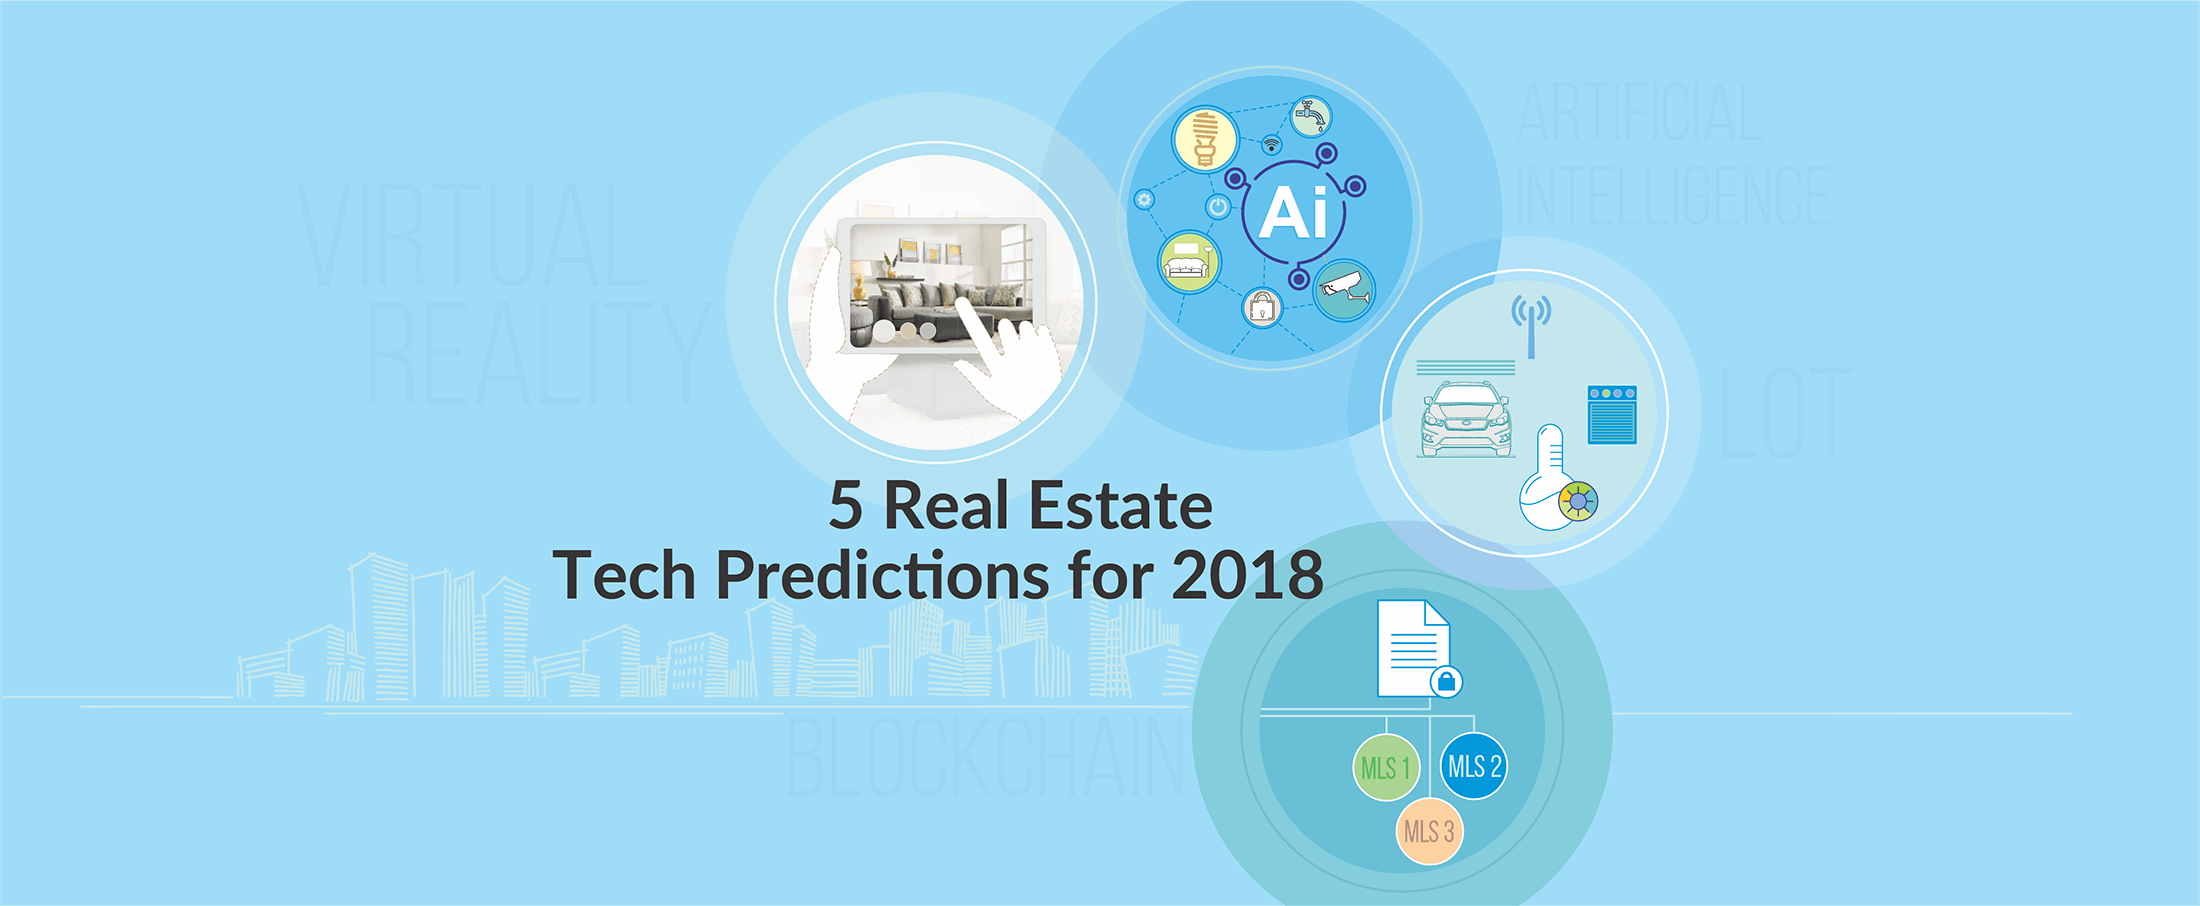 5 Real Estate Tech Predictions for 2018